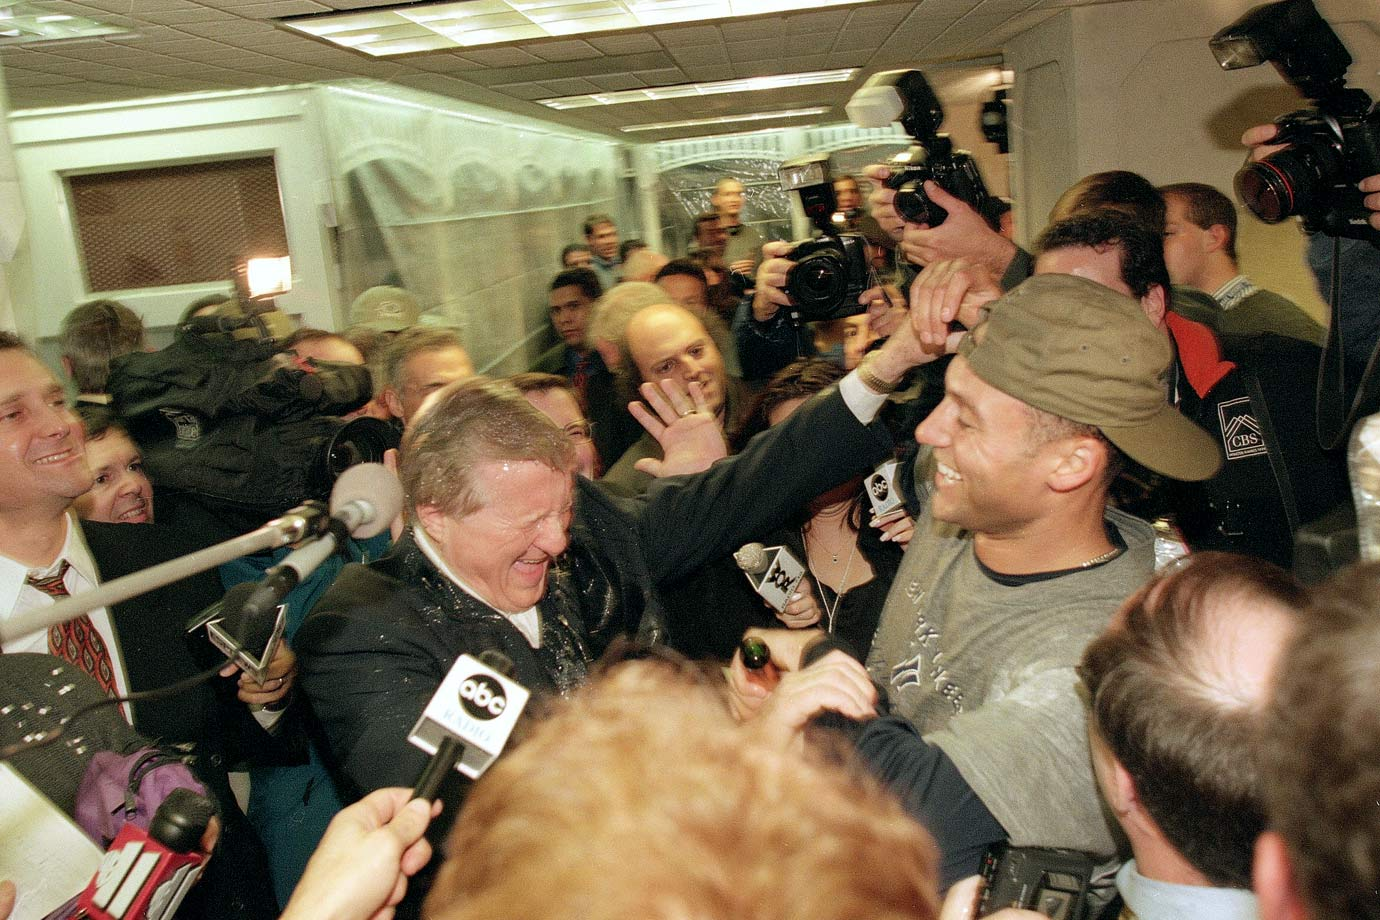 George Steinbrenner laughs with Derek Jeter after Jeter poured champagne on him after the New York Yankees World Series sweep of the Atlanta Braves on Oct. 27, 1999 at Yankee Stadium in Bronx, N.Y.